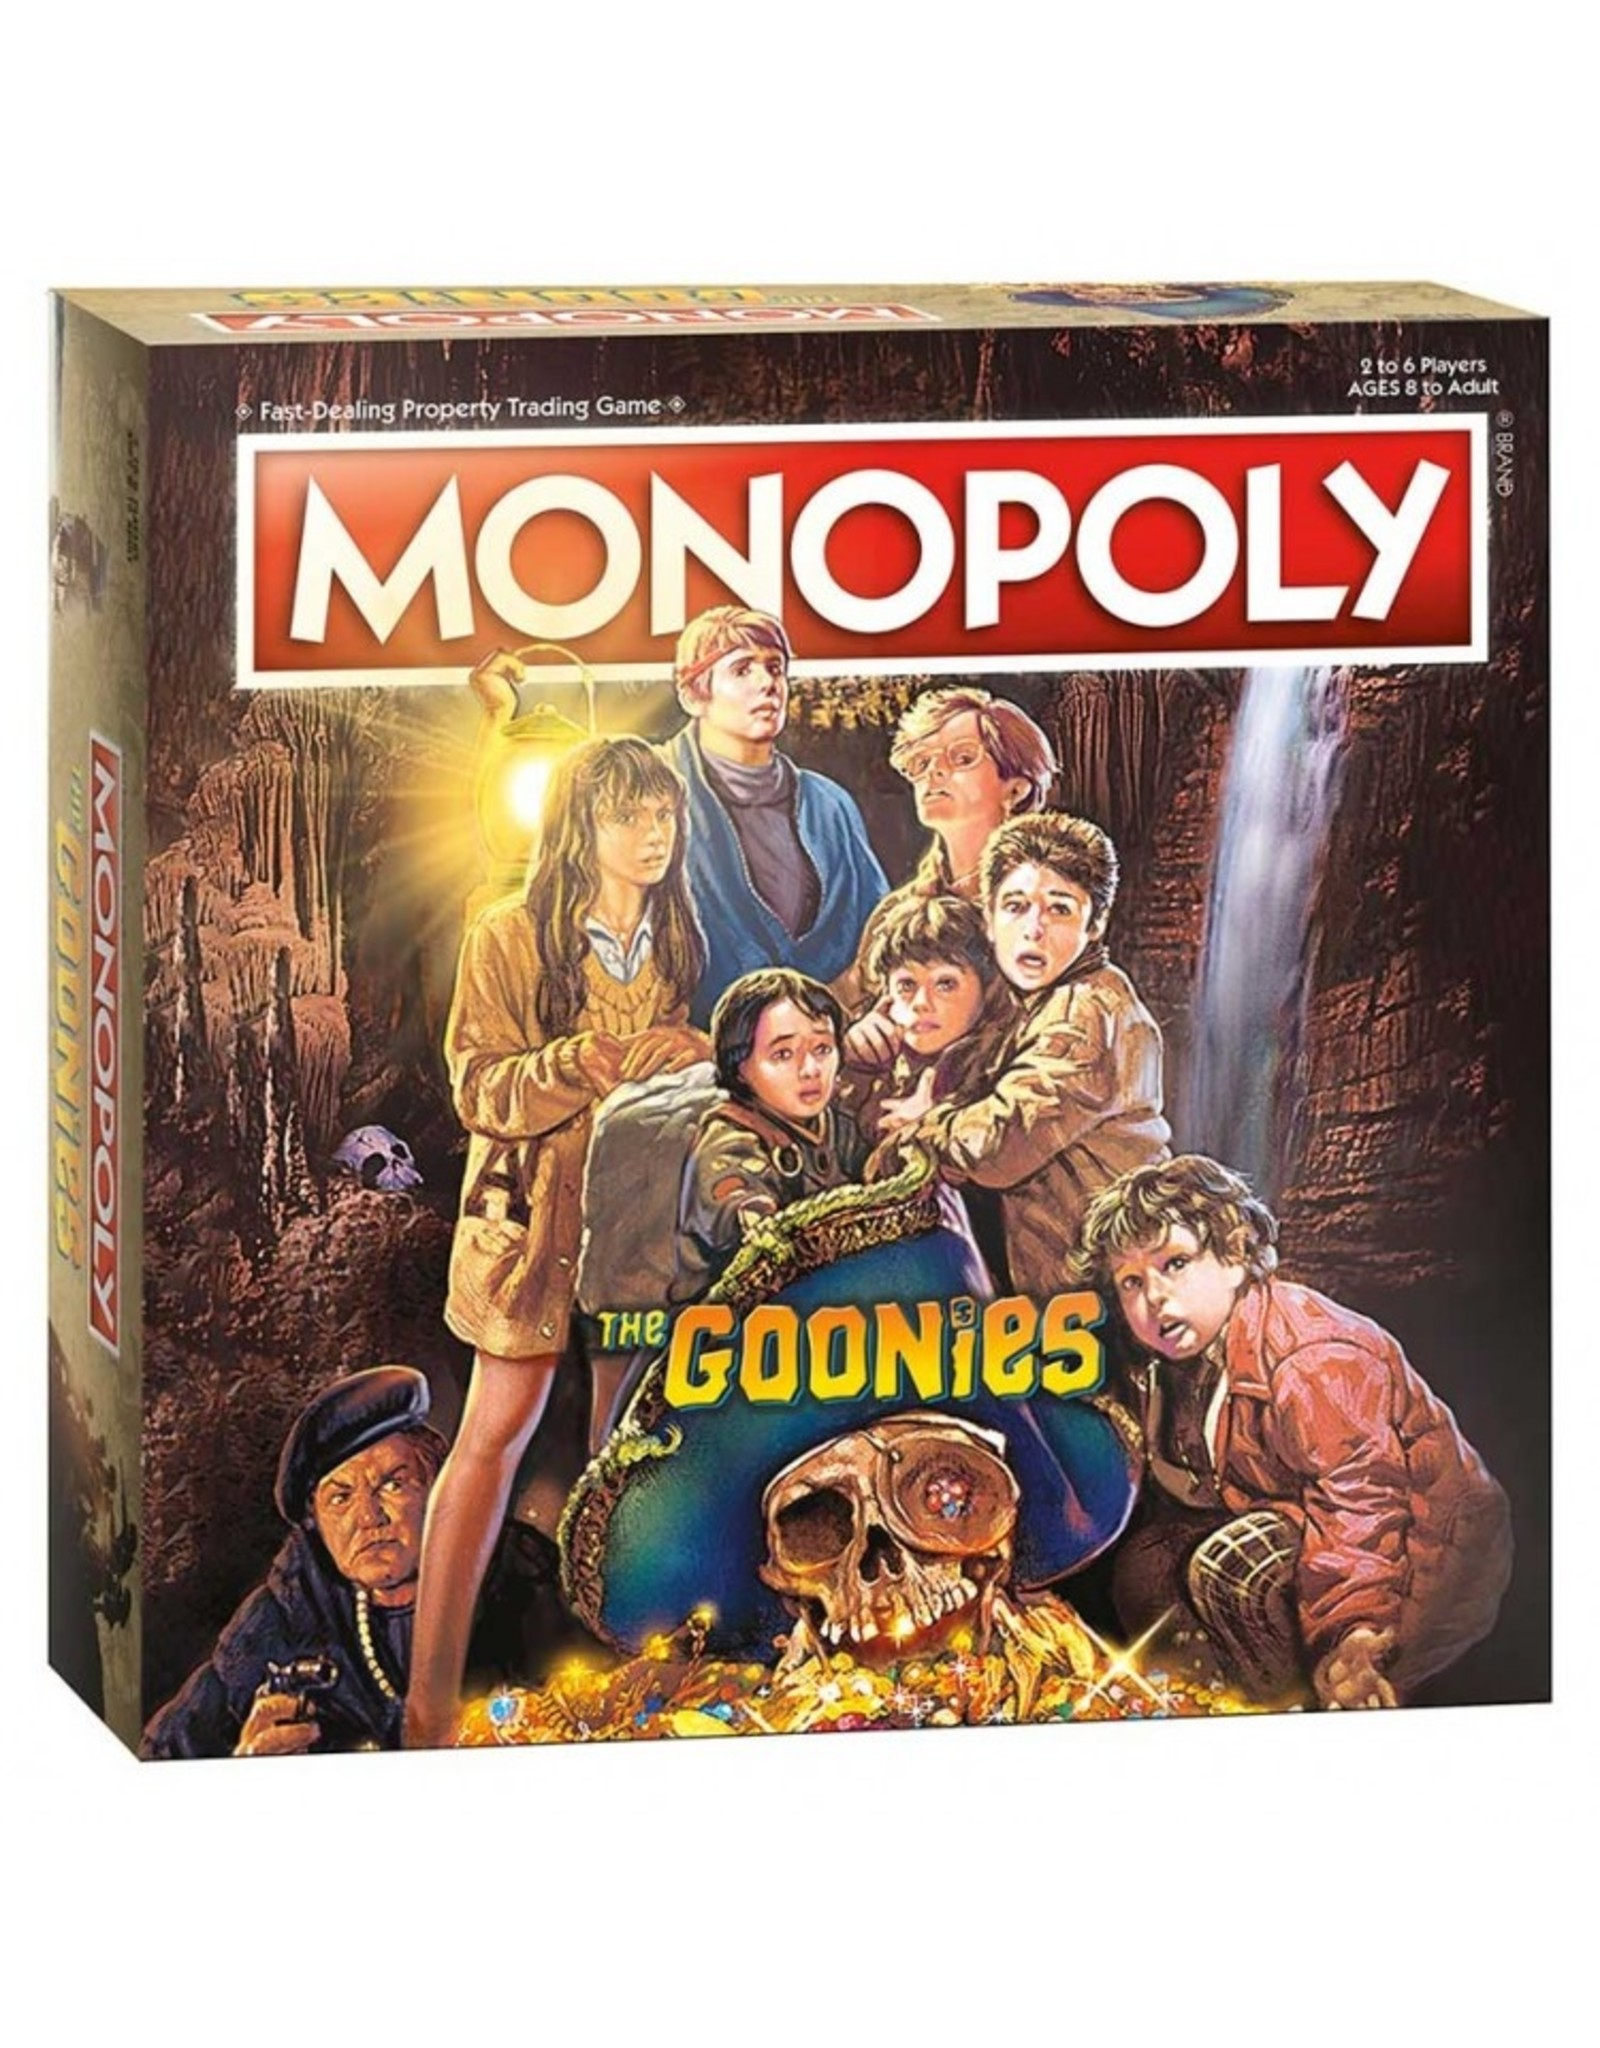 The OP Monopoly: The Goonies